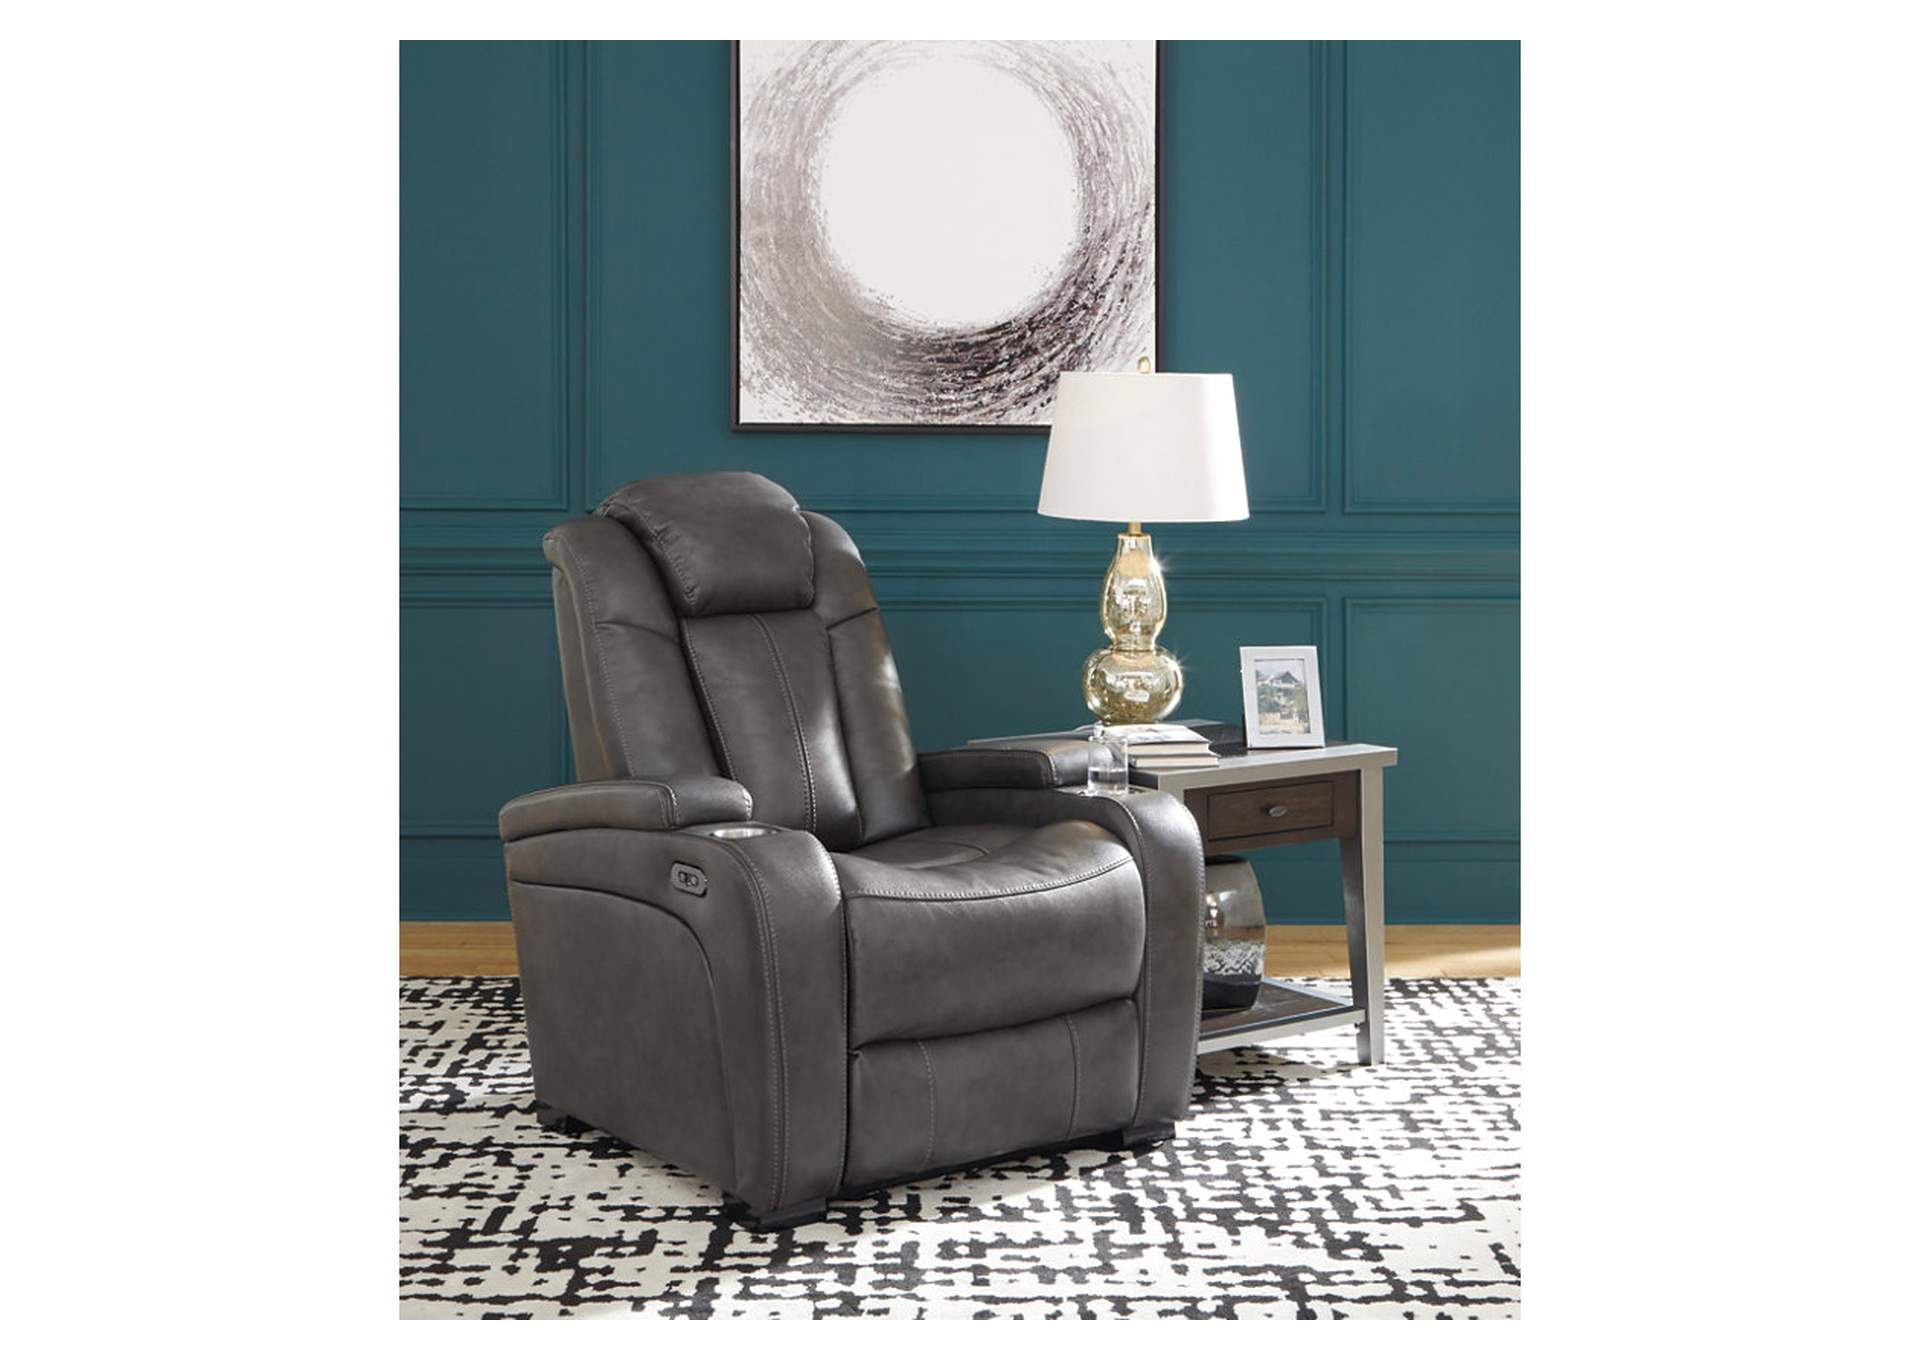 Turbulance Quarry Leather Rocker Recliner,Signature Design By Ashley